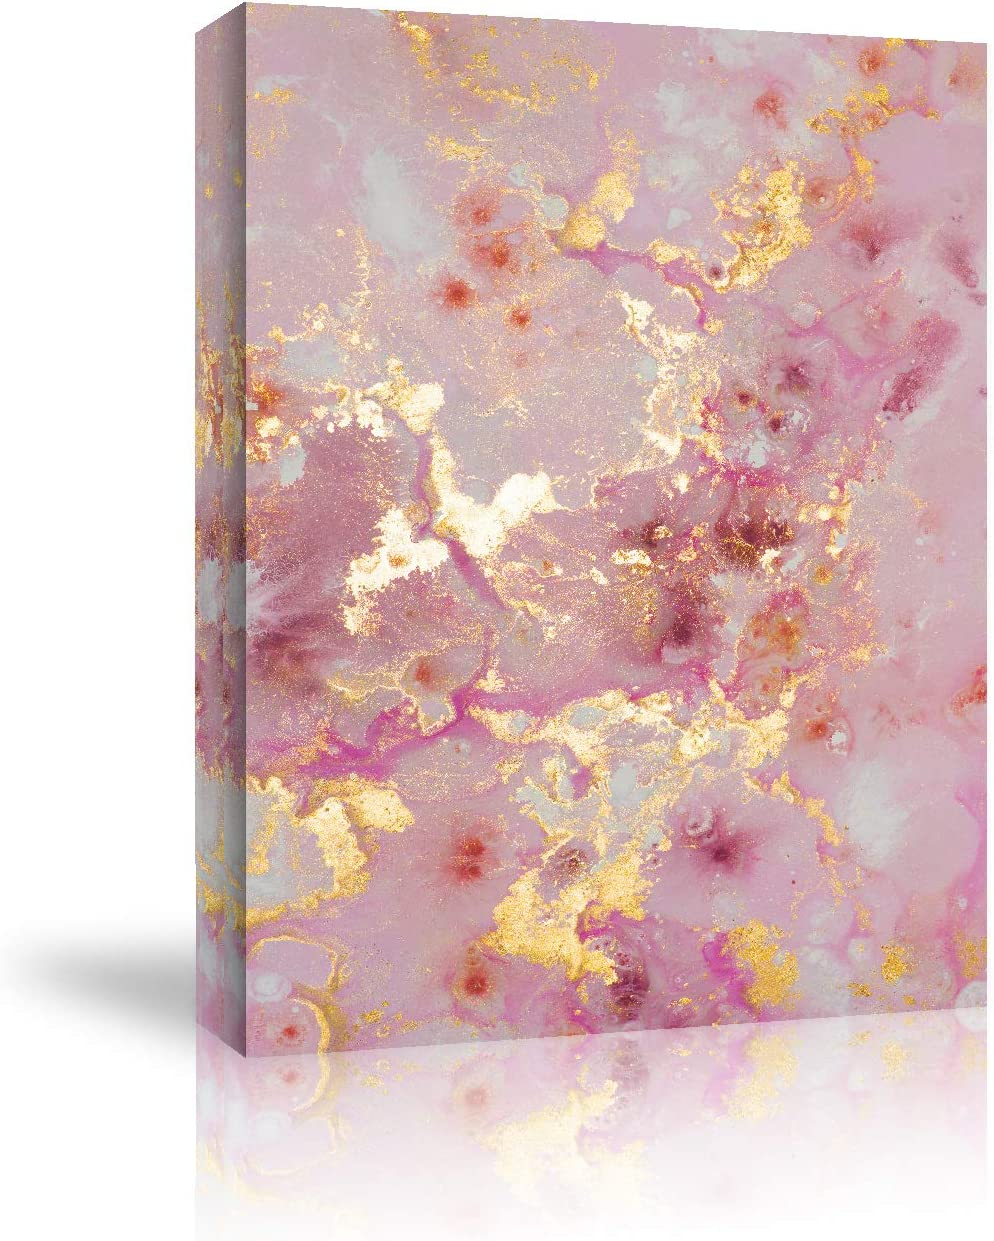 Looife Canvas Wall Art - 18x24 Inch Pink and Gold Marble Stone Texture Picture Prints Wall Decor, Ready to Hang